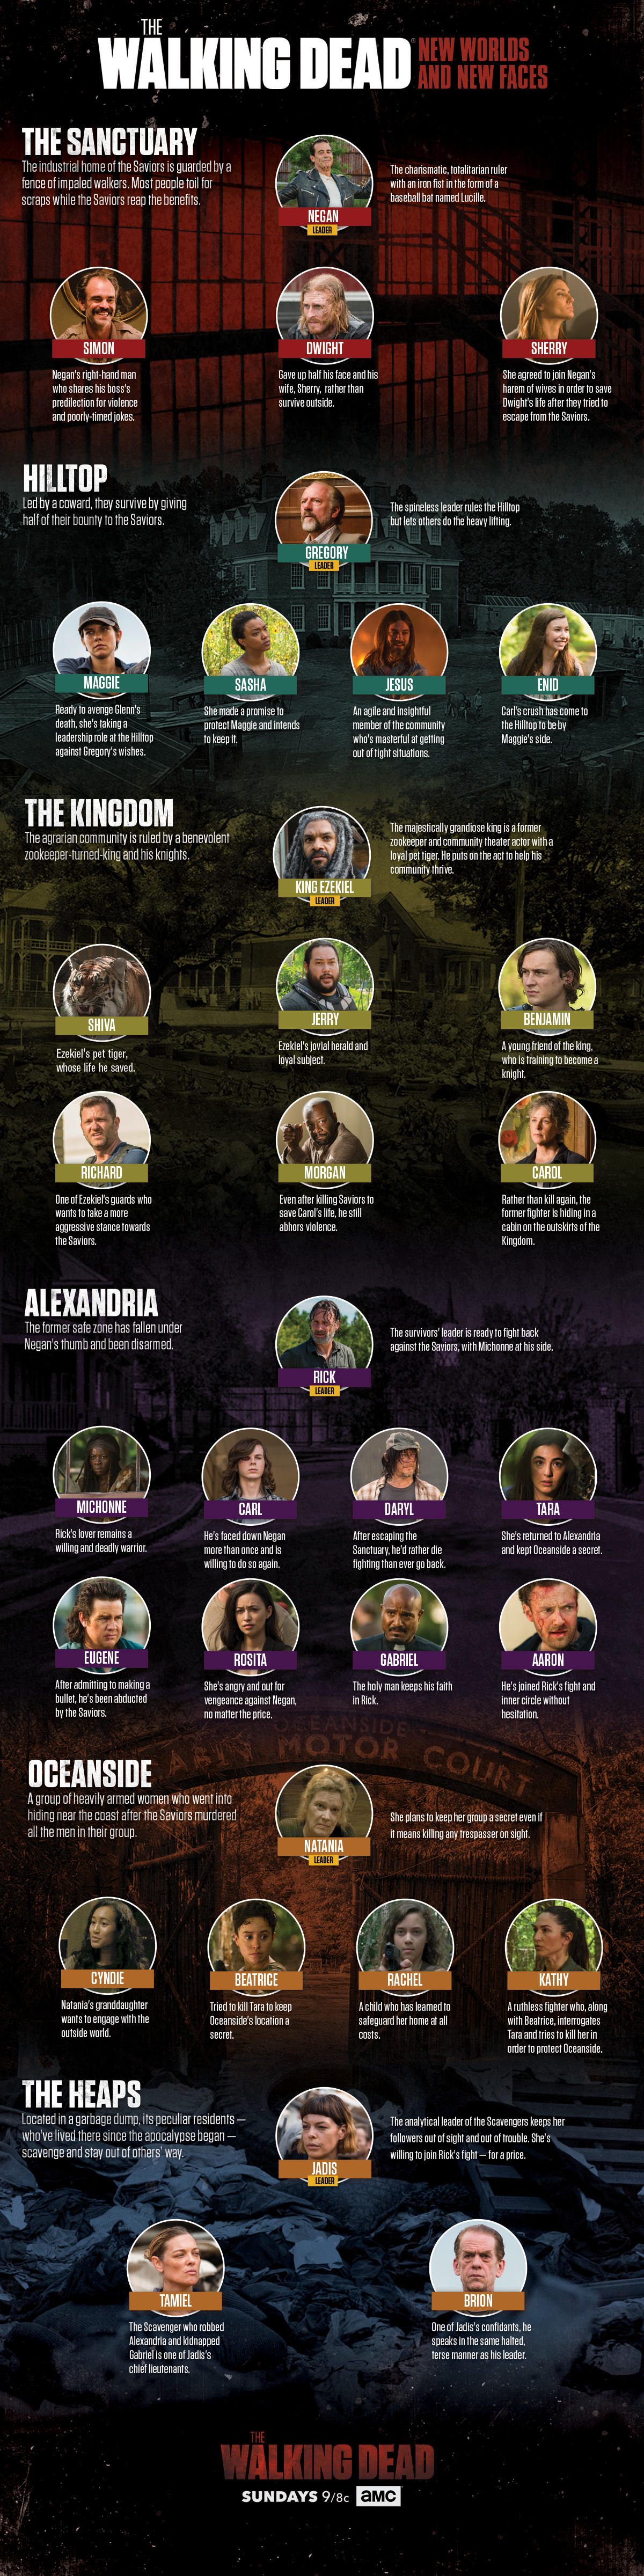 the-walking-dead-season-7-infographic-post